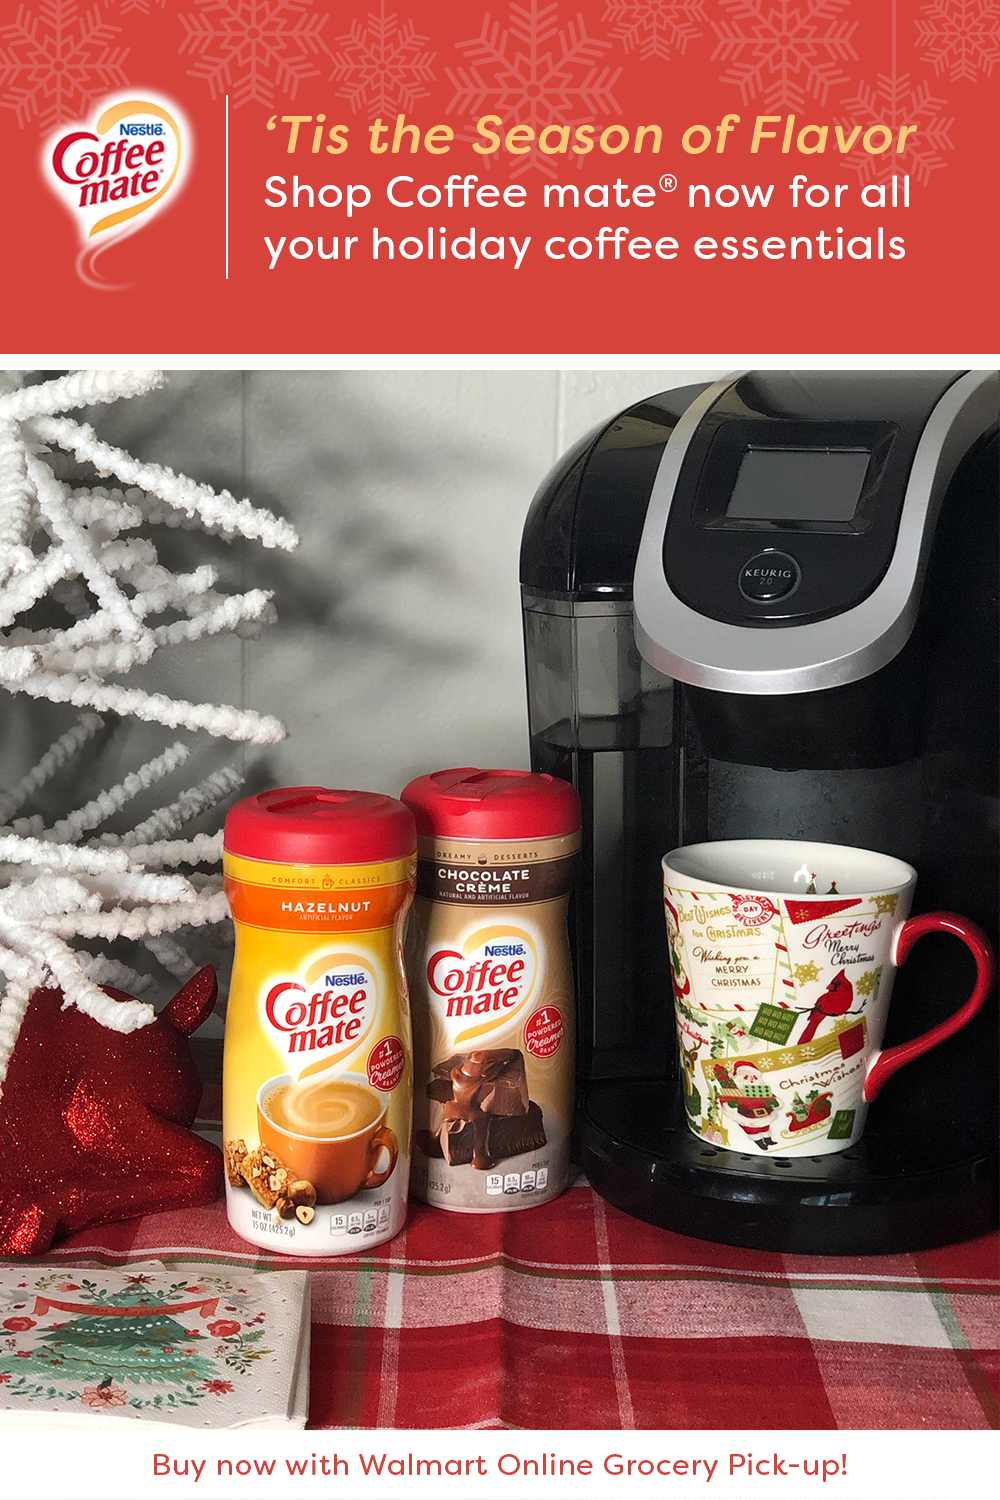 Wake up your outoftown guests this holiday season with a